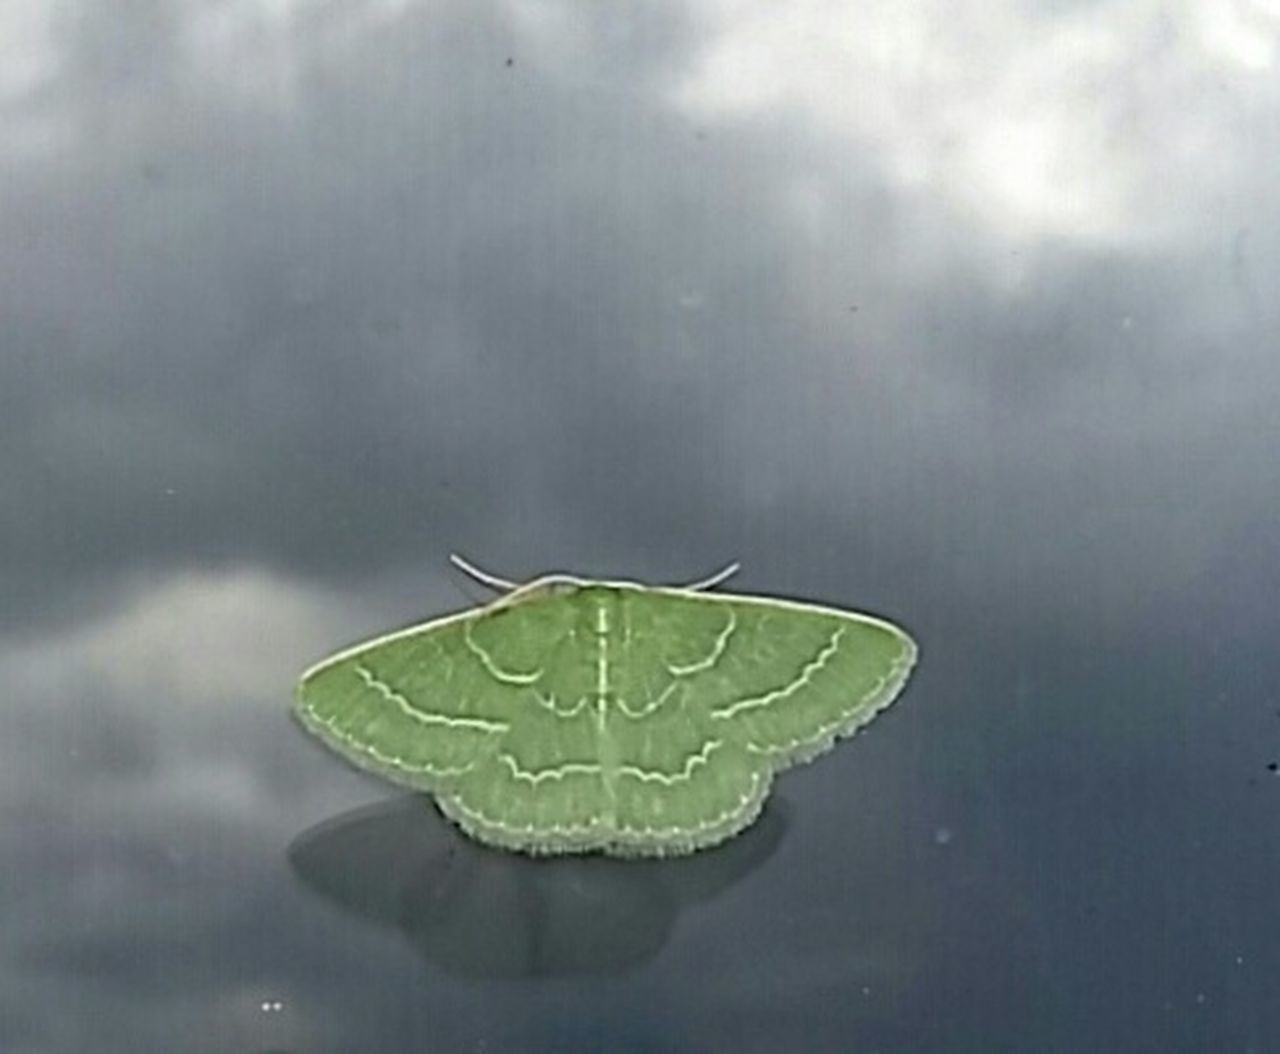 Green Nature Moth Outdoors Fine Art Photography. Reflections Shadow On Glass Window Cling Animal Photography Animals In The Wild